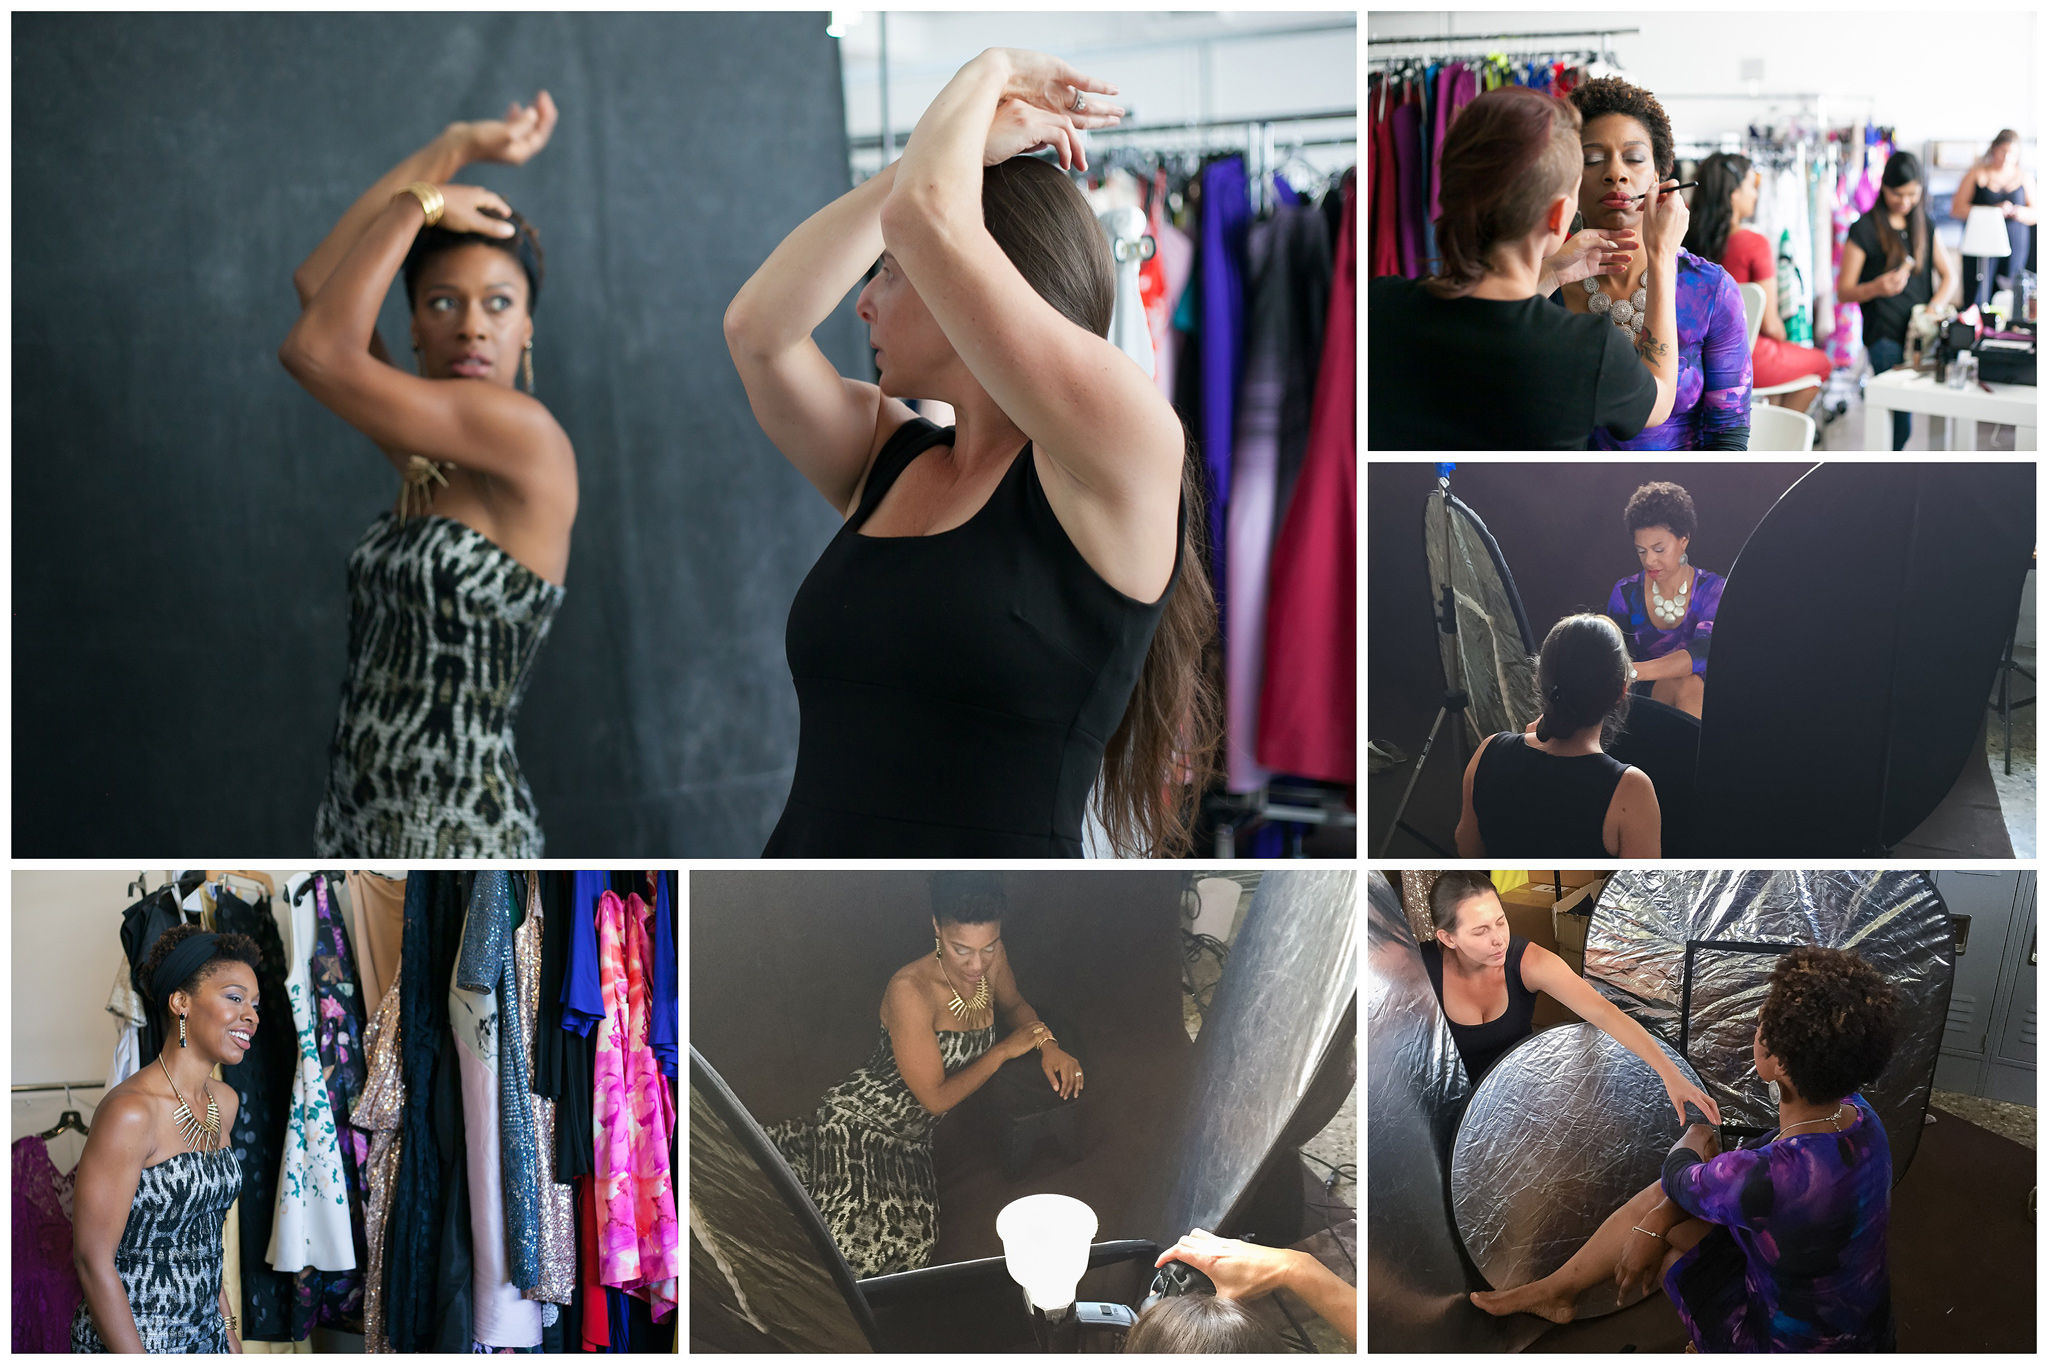 Beauty-Photoshoot-Behind-the-Scenes-Leopard-Print-Dress